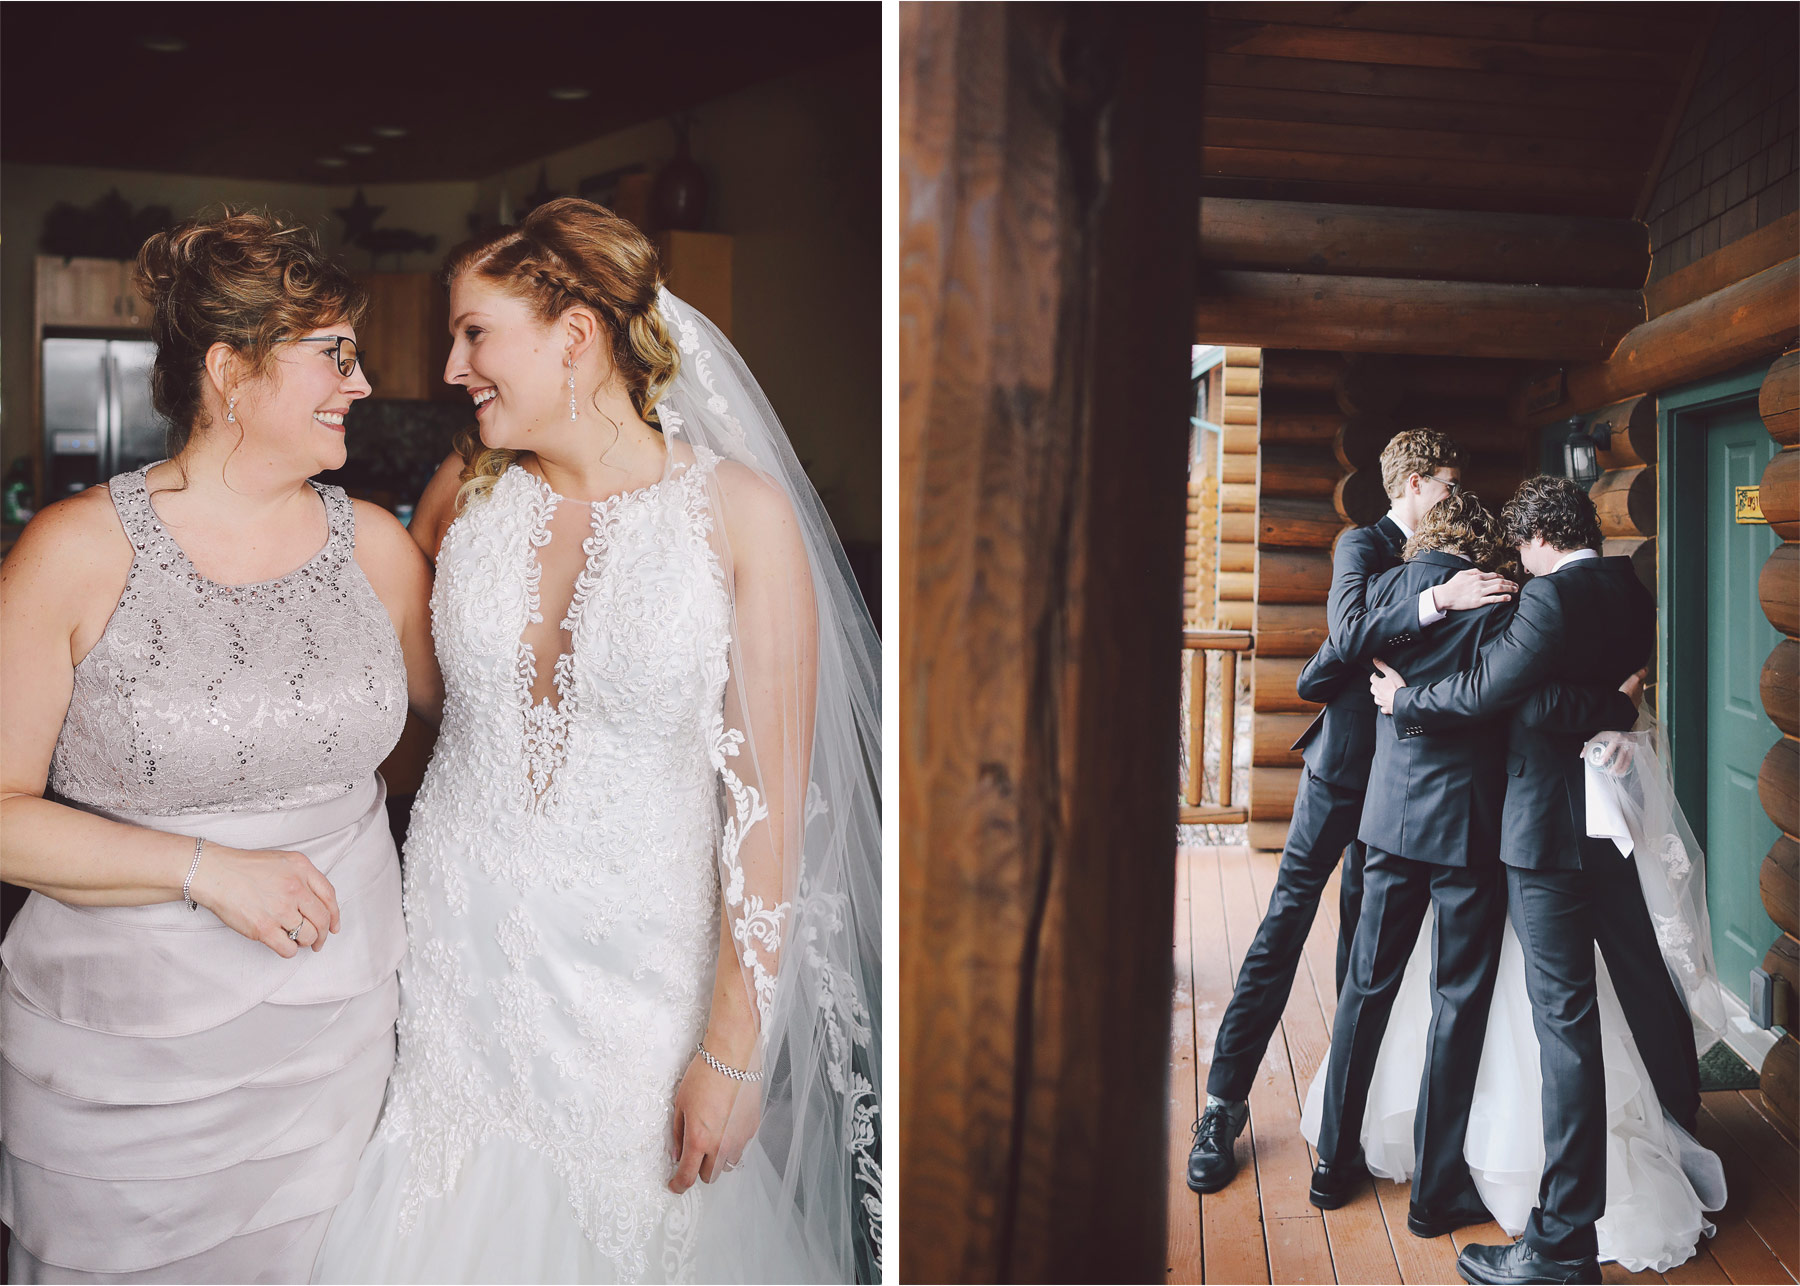 03-Minnesota-Wedding-by-Andrew-Vick-Photography-Grand-Superior-Lodge-Duluth-Two-Harbors-Mother-Bride-Brothers-Hug-Veronica-and-Tyler.jpg